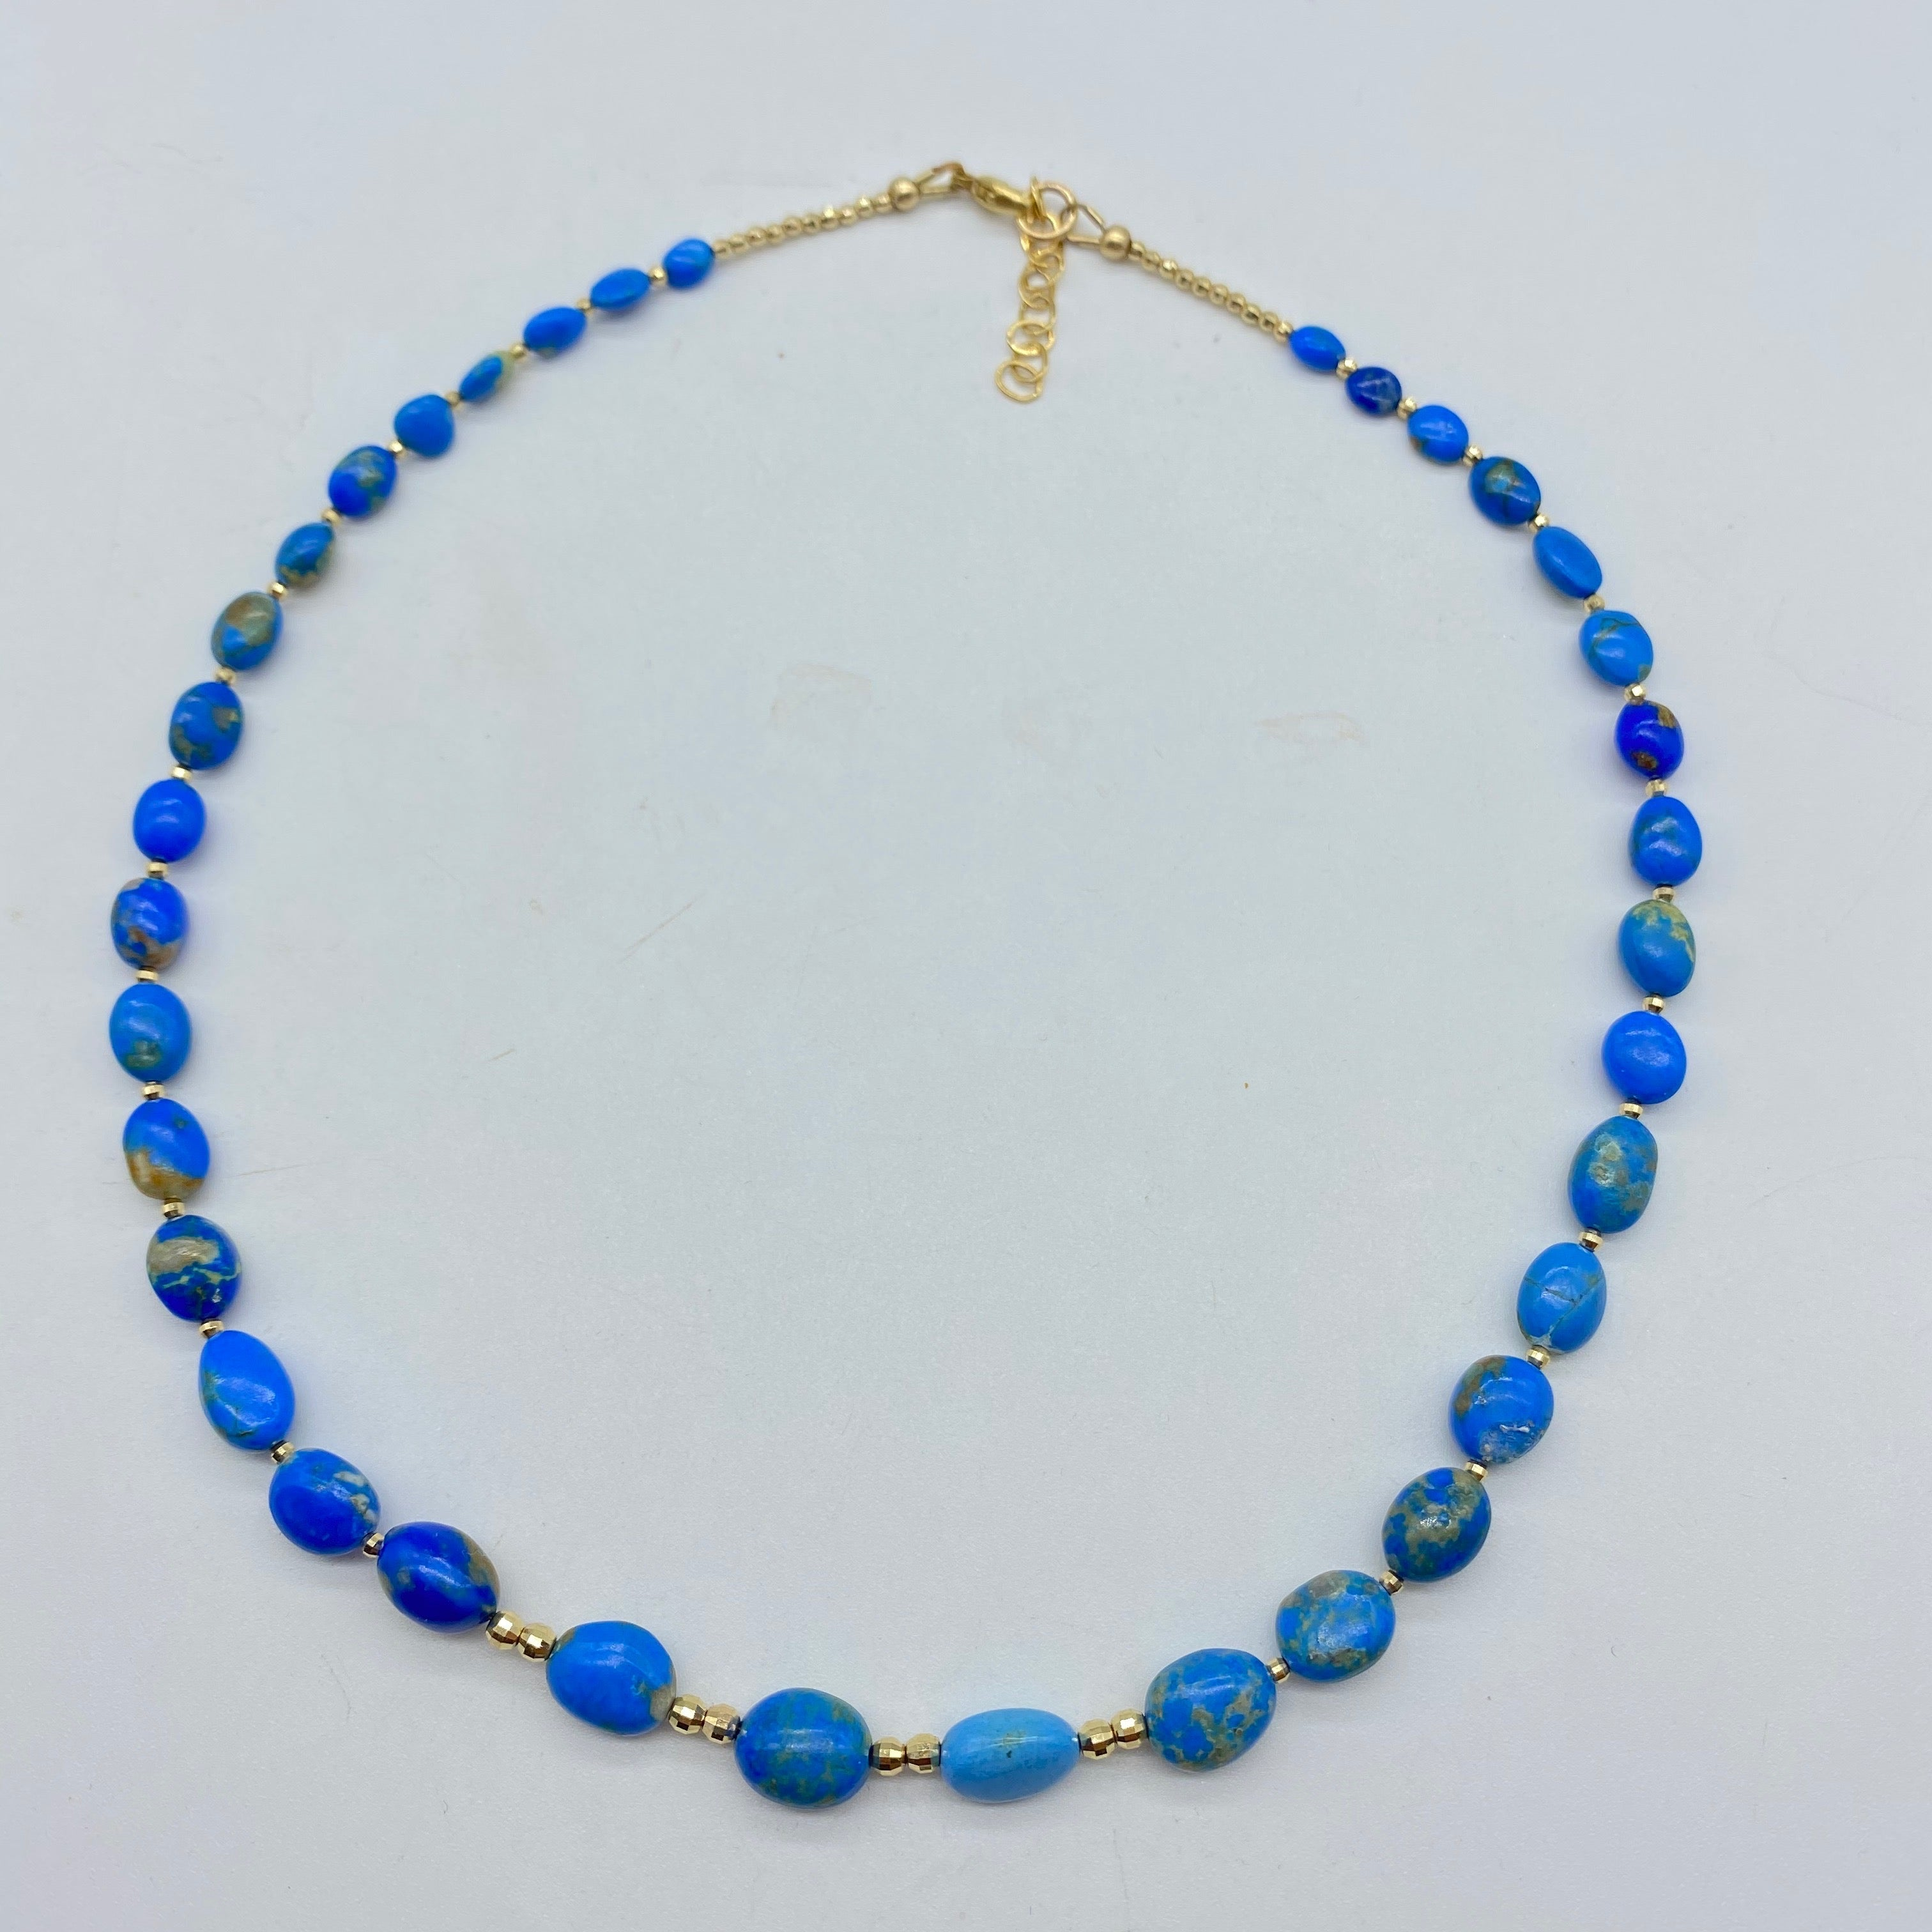 BLUE CERULELITE LIBERATION NECKLACE WITH GOLD